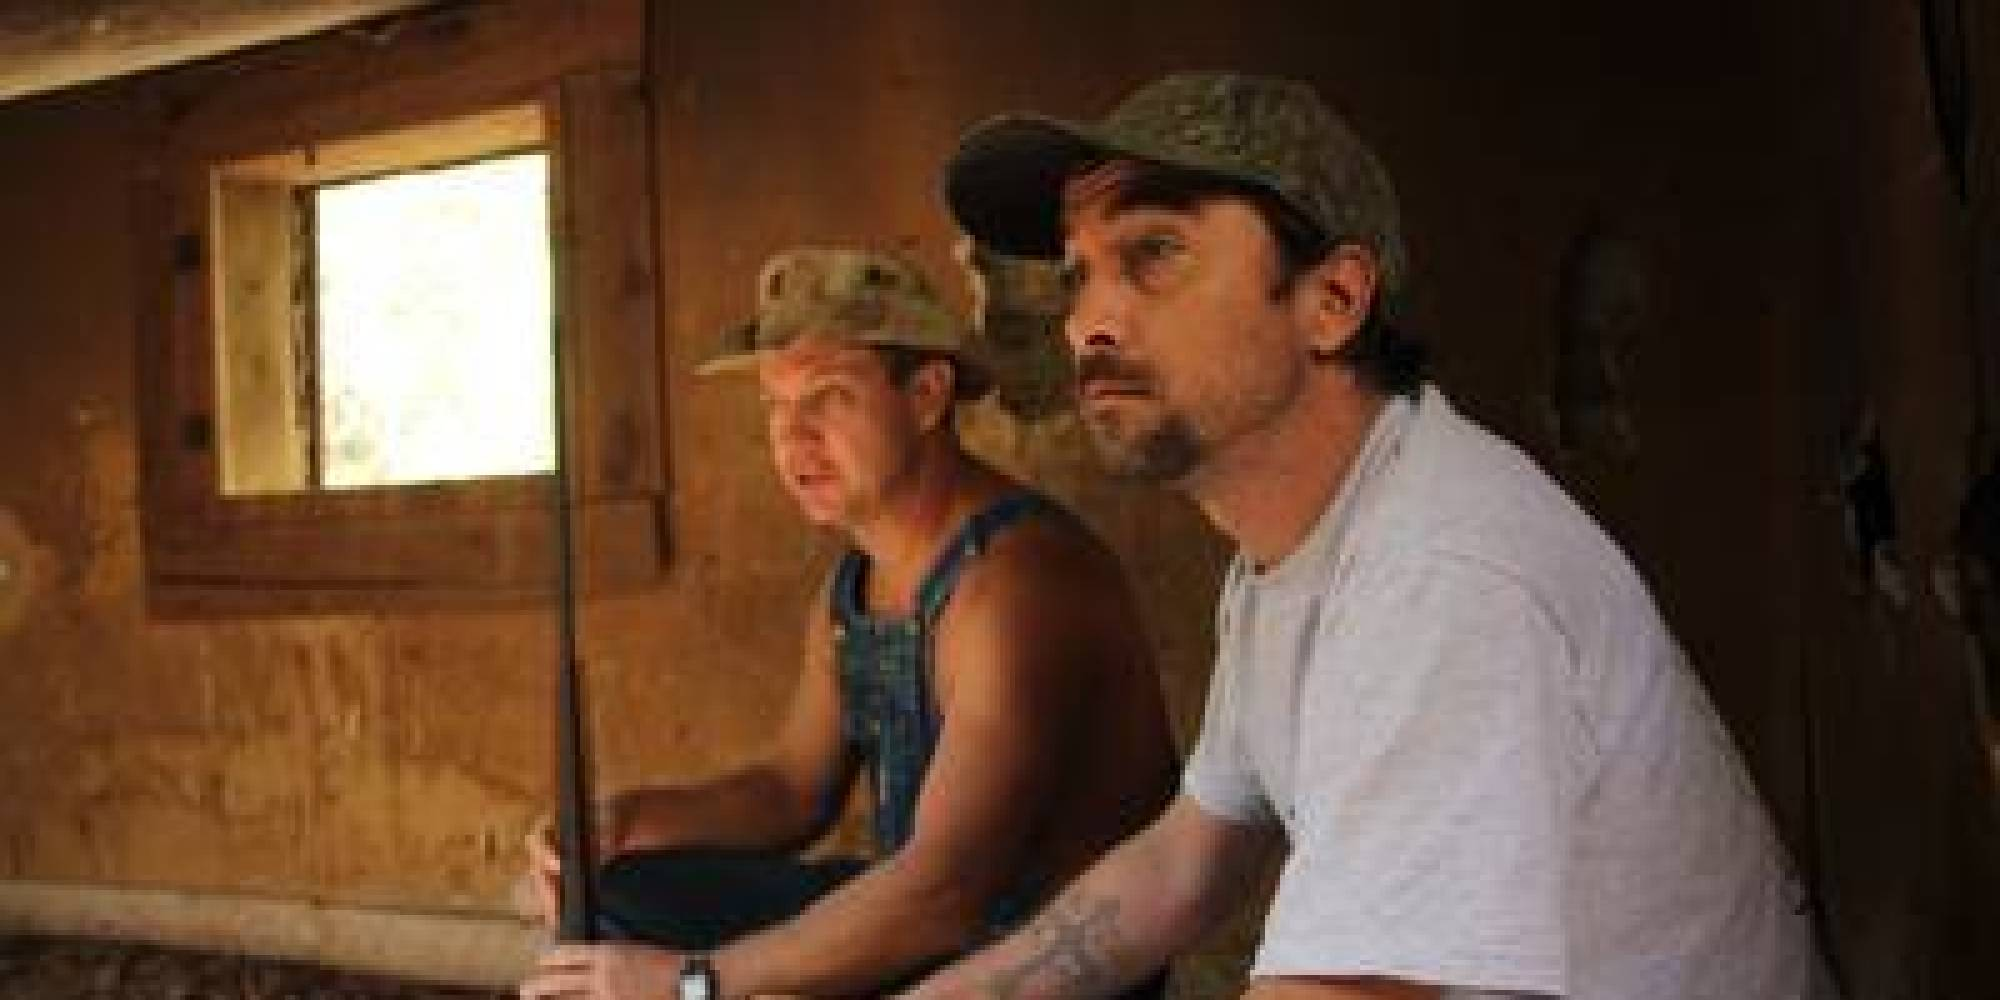 Tickle From Moonshiners Arrested